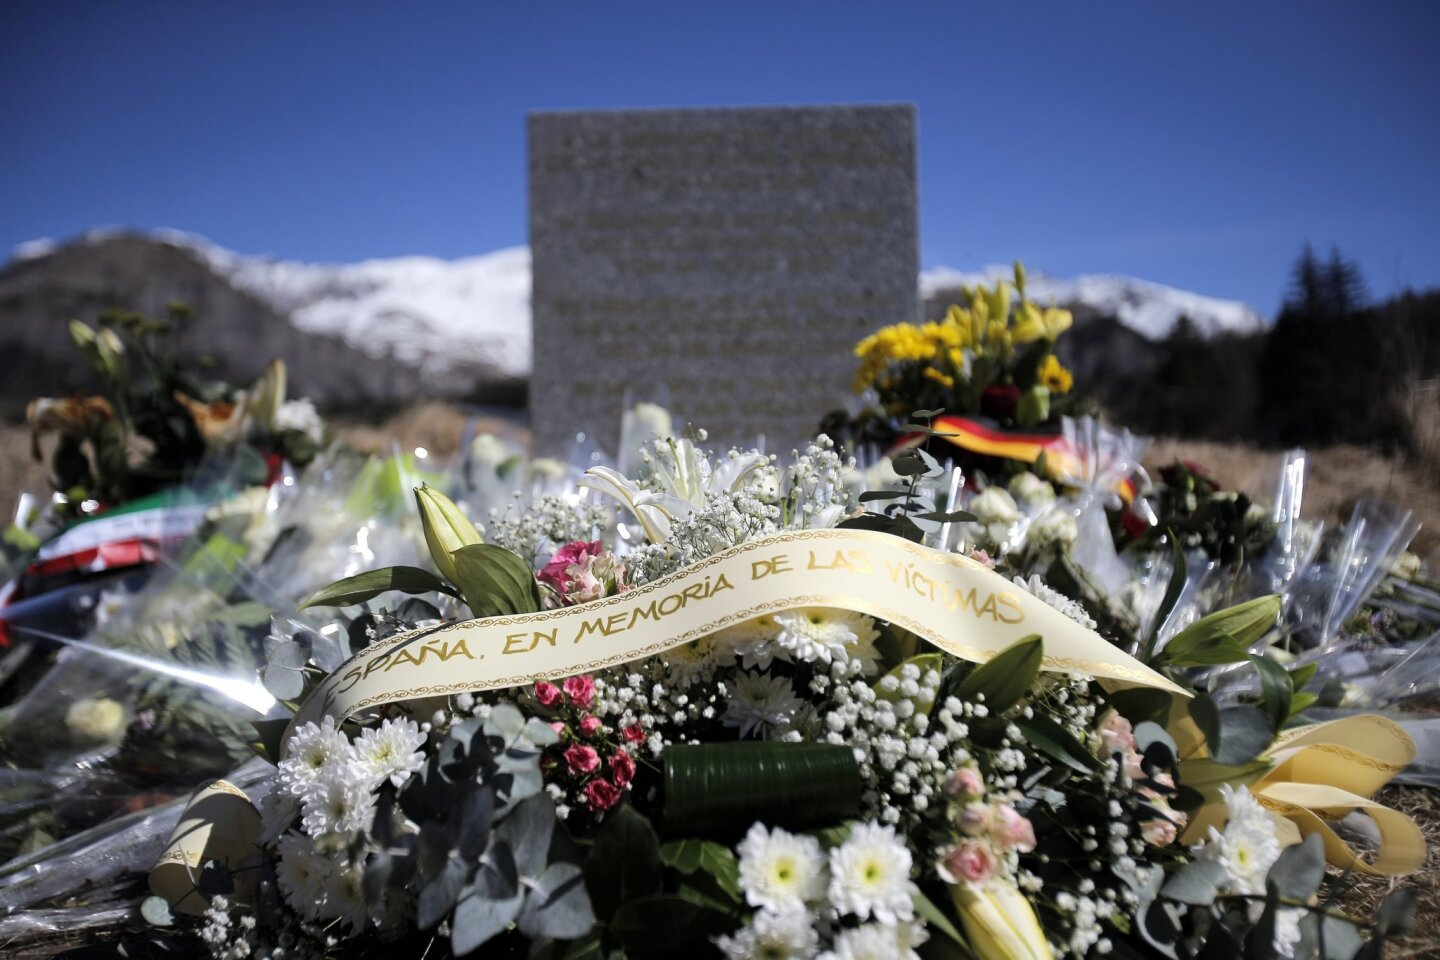 A stele and flowers laid in memory of the victims are placed in the area where the Germanwings jetliner crashed in the French Alps, in  Le Vernet, France, Friday, March 27, 2015. The crash of Germanwings Flight 9525 into an Alpine mountain, which killed all 150 people aboard, has raised questions a